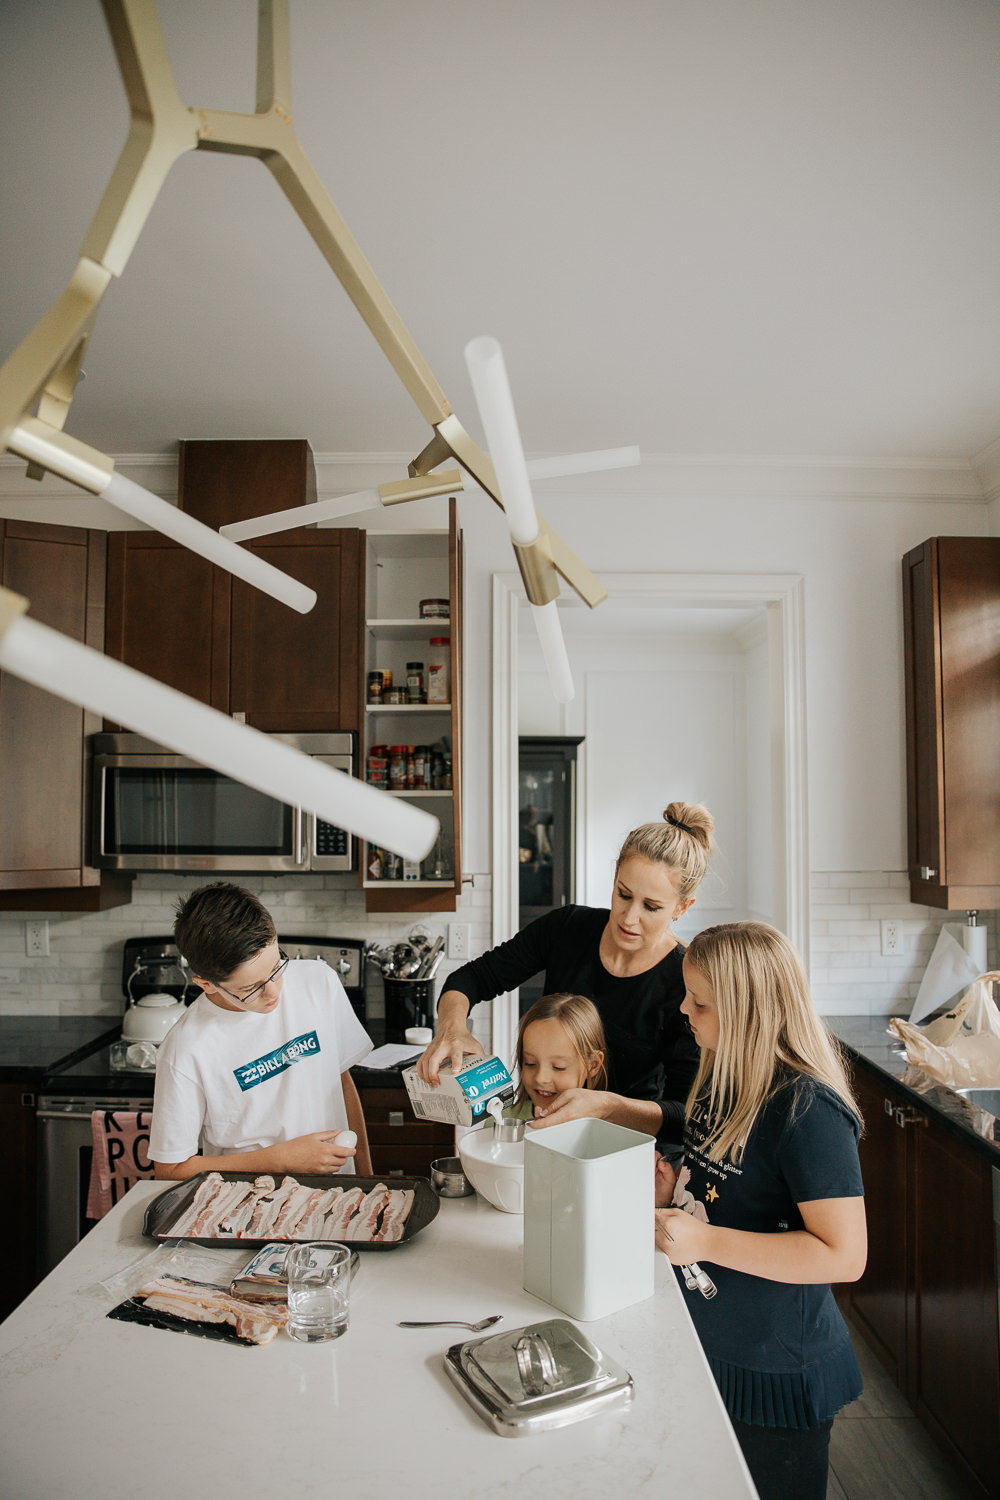 3 children standing at kitchen island with mom helping to mix pancake batter for family brunch, 8 and 10 year old girls, 13 year old boy -GTA Lifestyle Photos